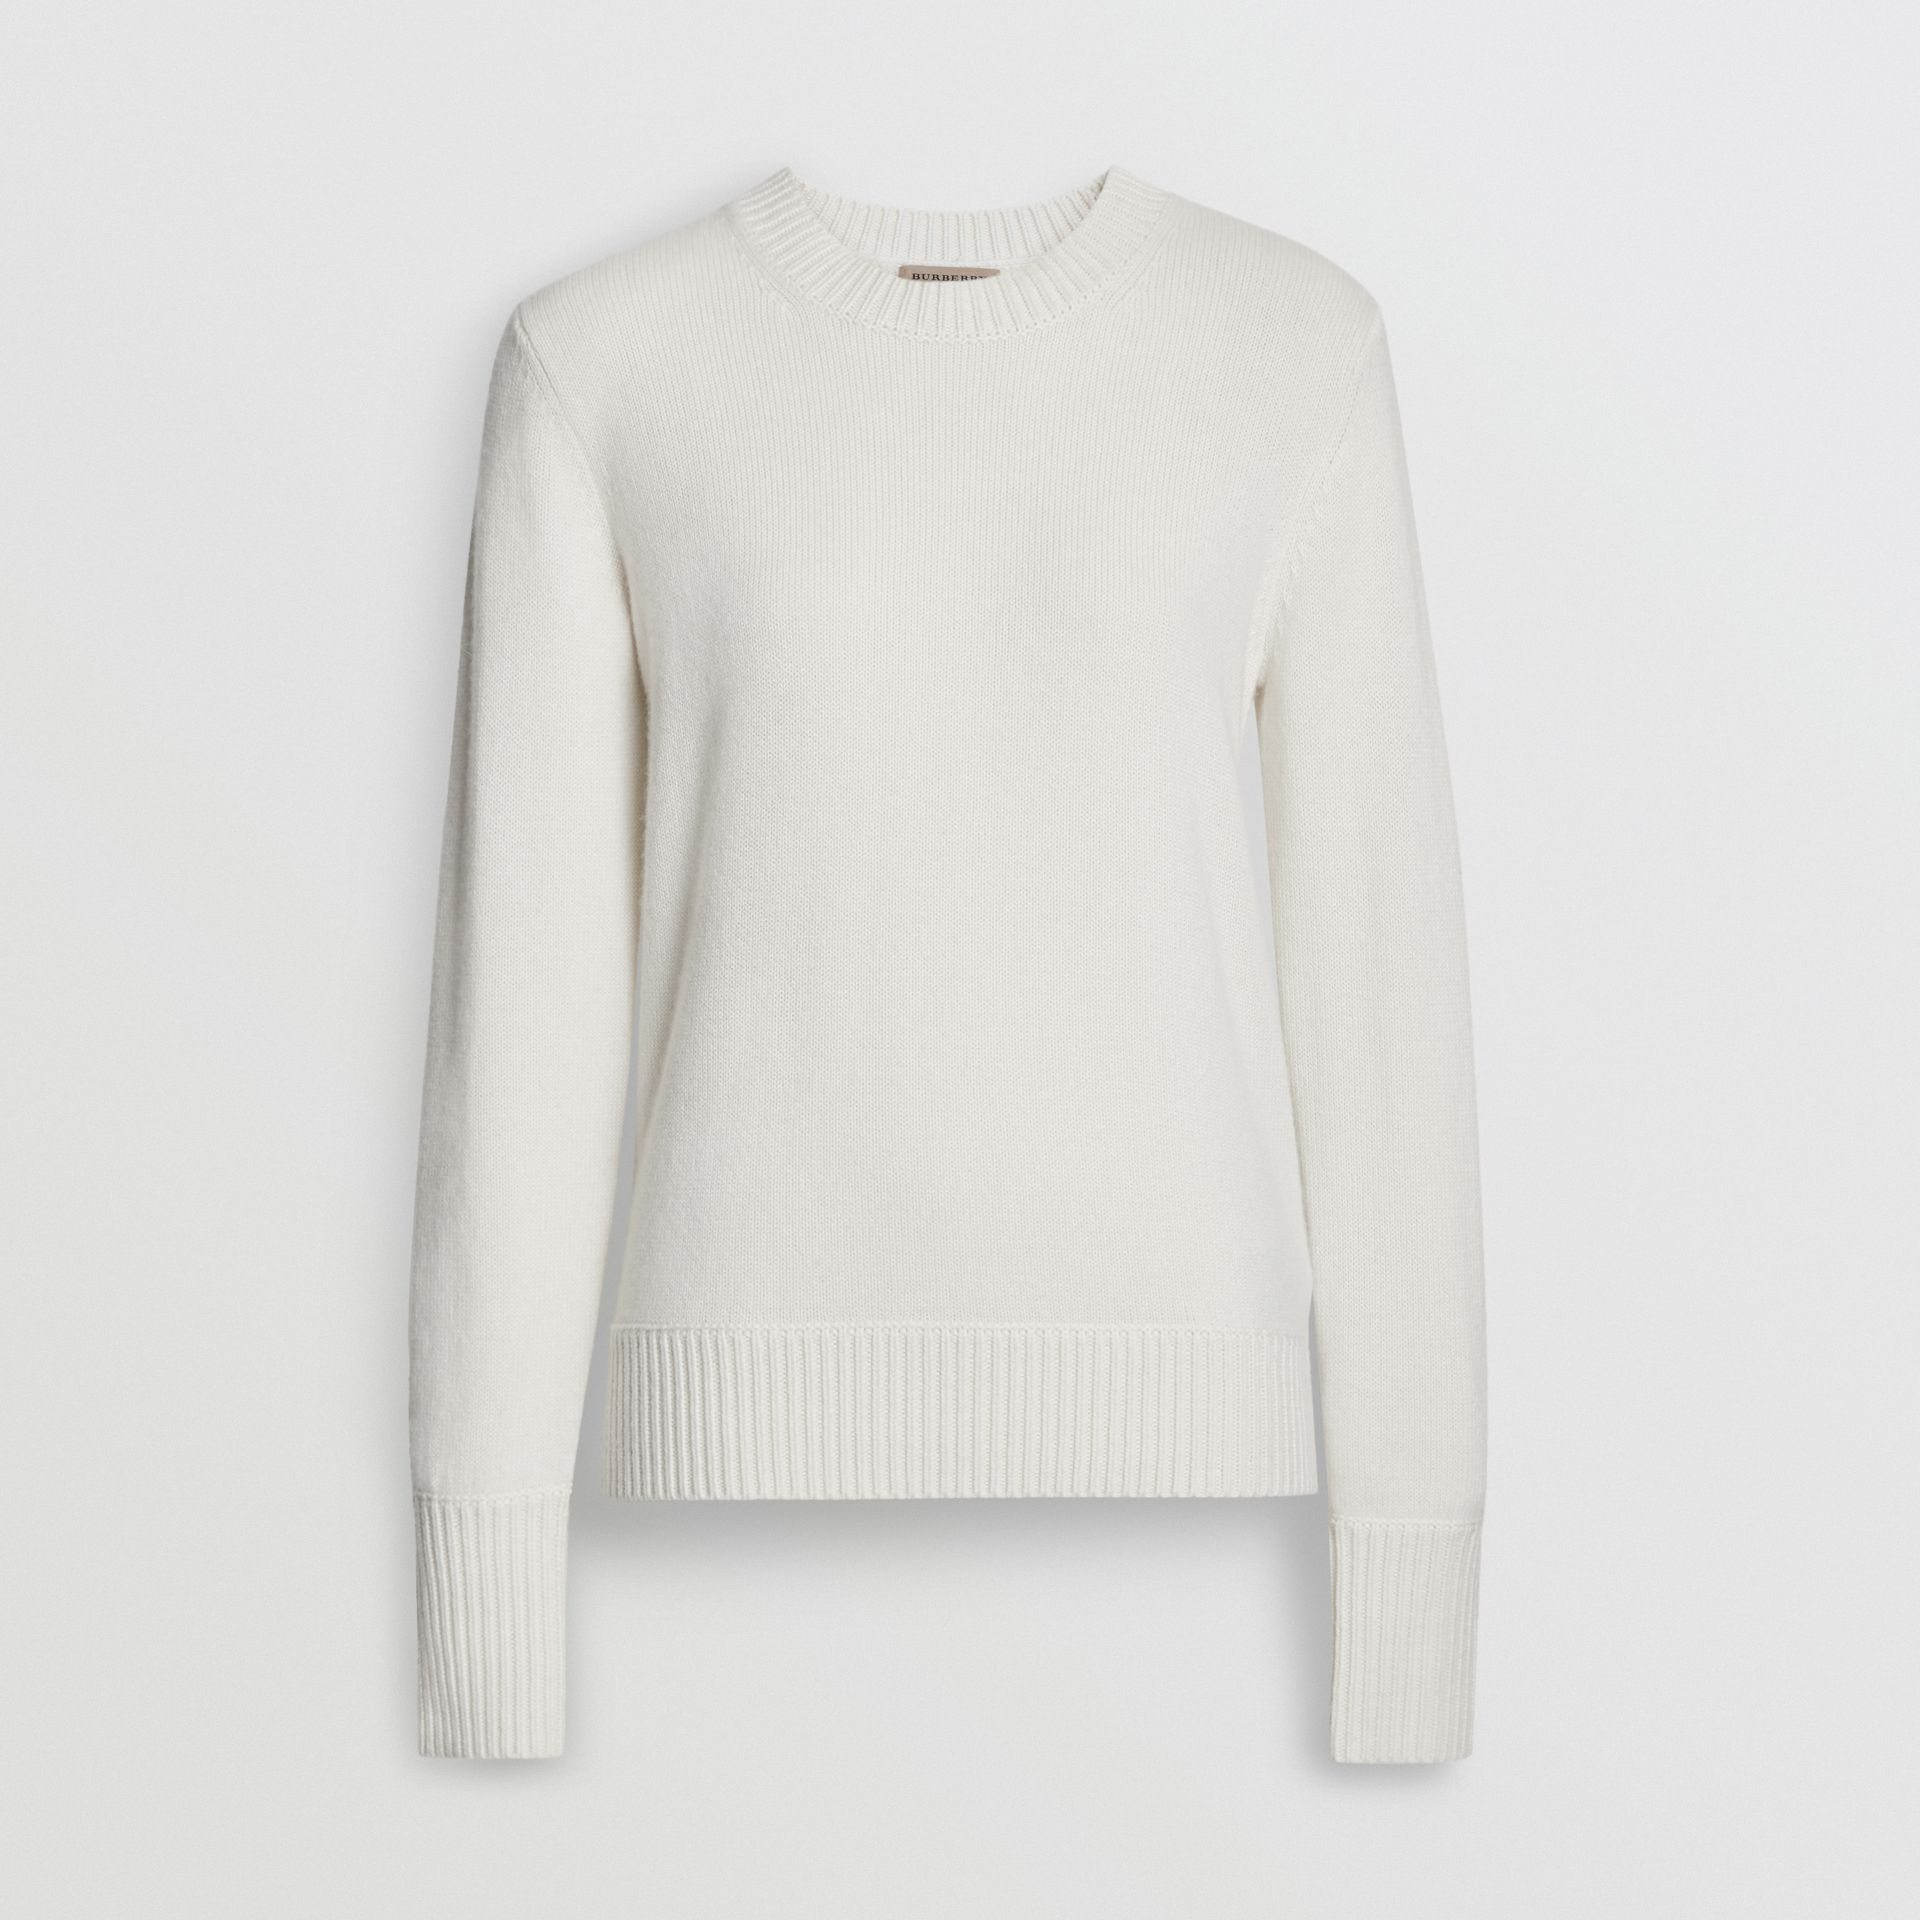 Archive Logo Appliqué Cashmere Sweater in White - Women | Burberry - gallery image 3